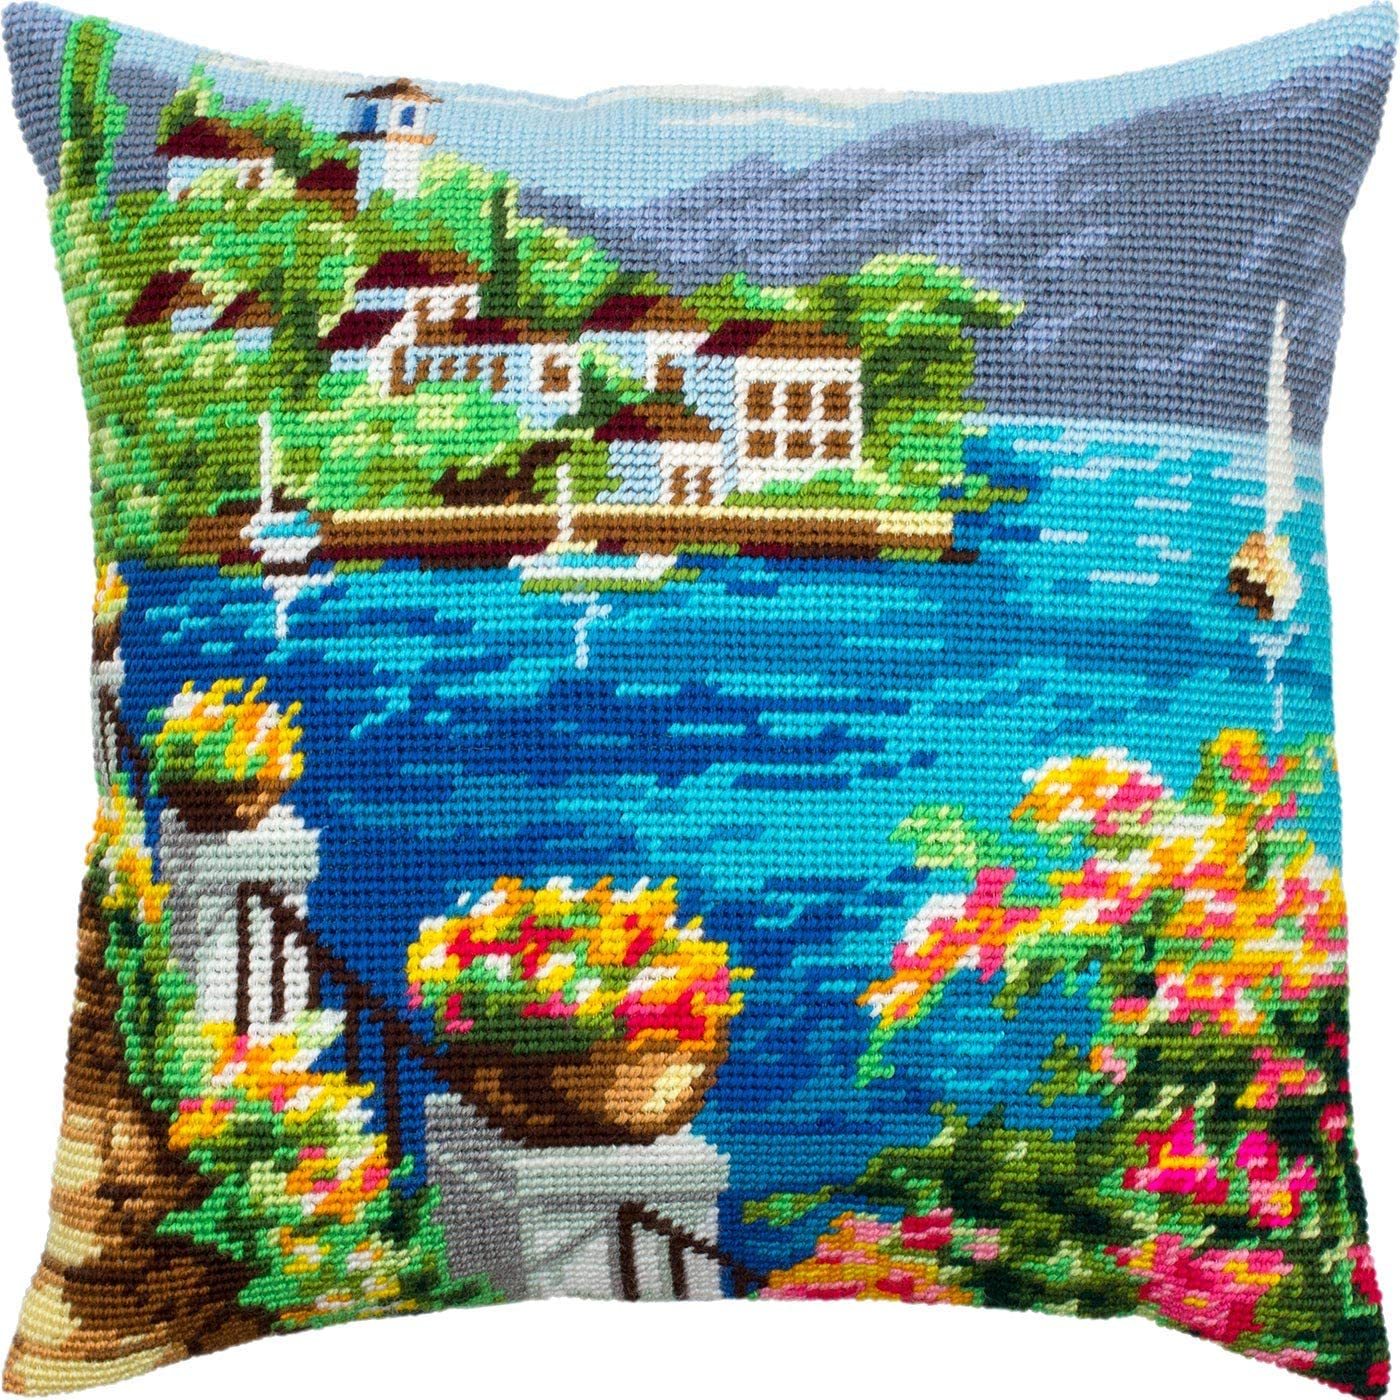 Needlepoint Kit Throw Pillow 16/×16 Inches European Quality Printed Tapestry Canvas Flower Pots